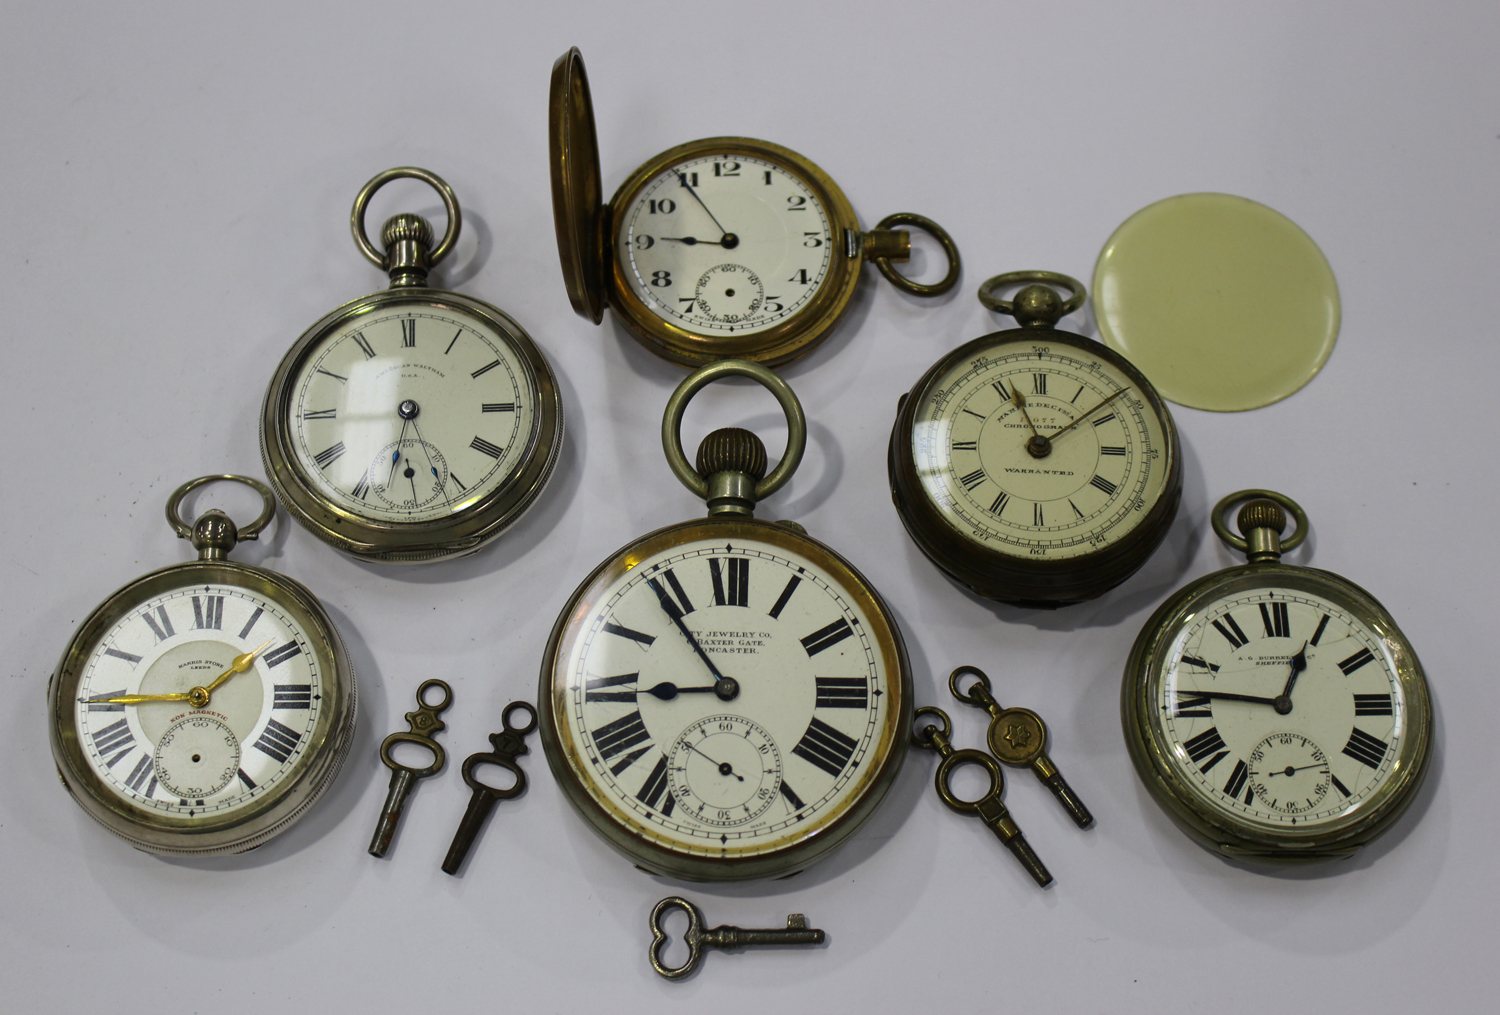 Antique Pocket Watches Imported From Abroad 0s Waltham Pocket Watch Porcelain Dial 1013